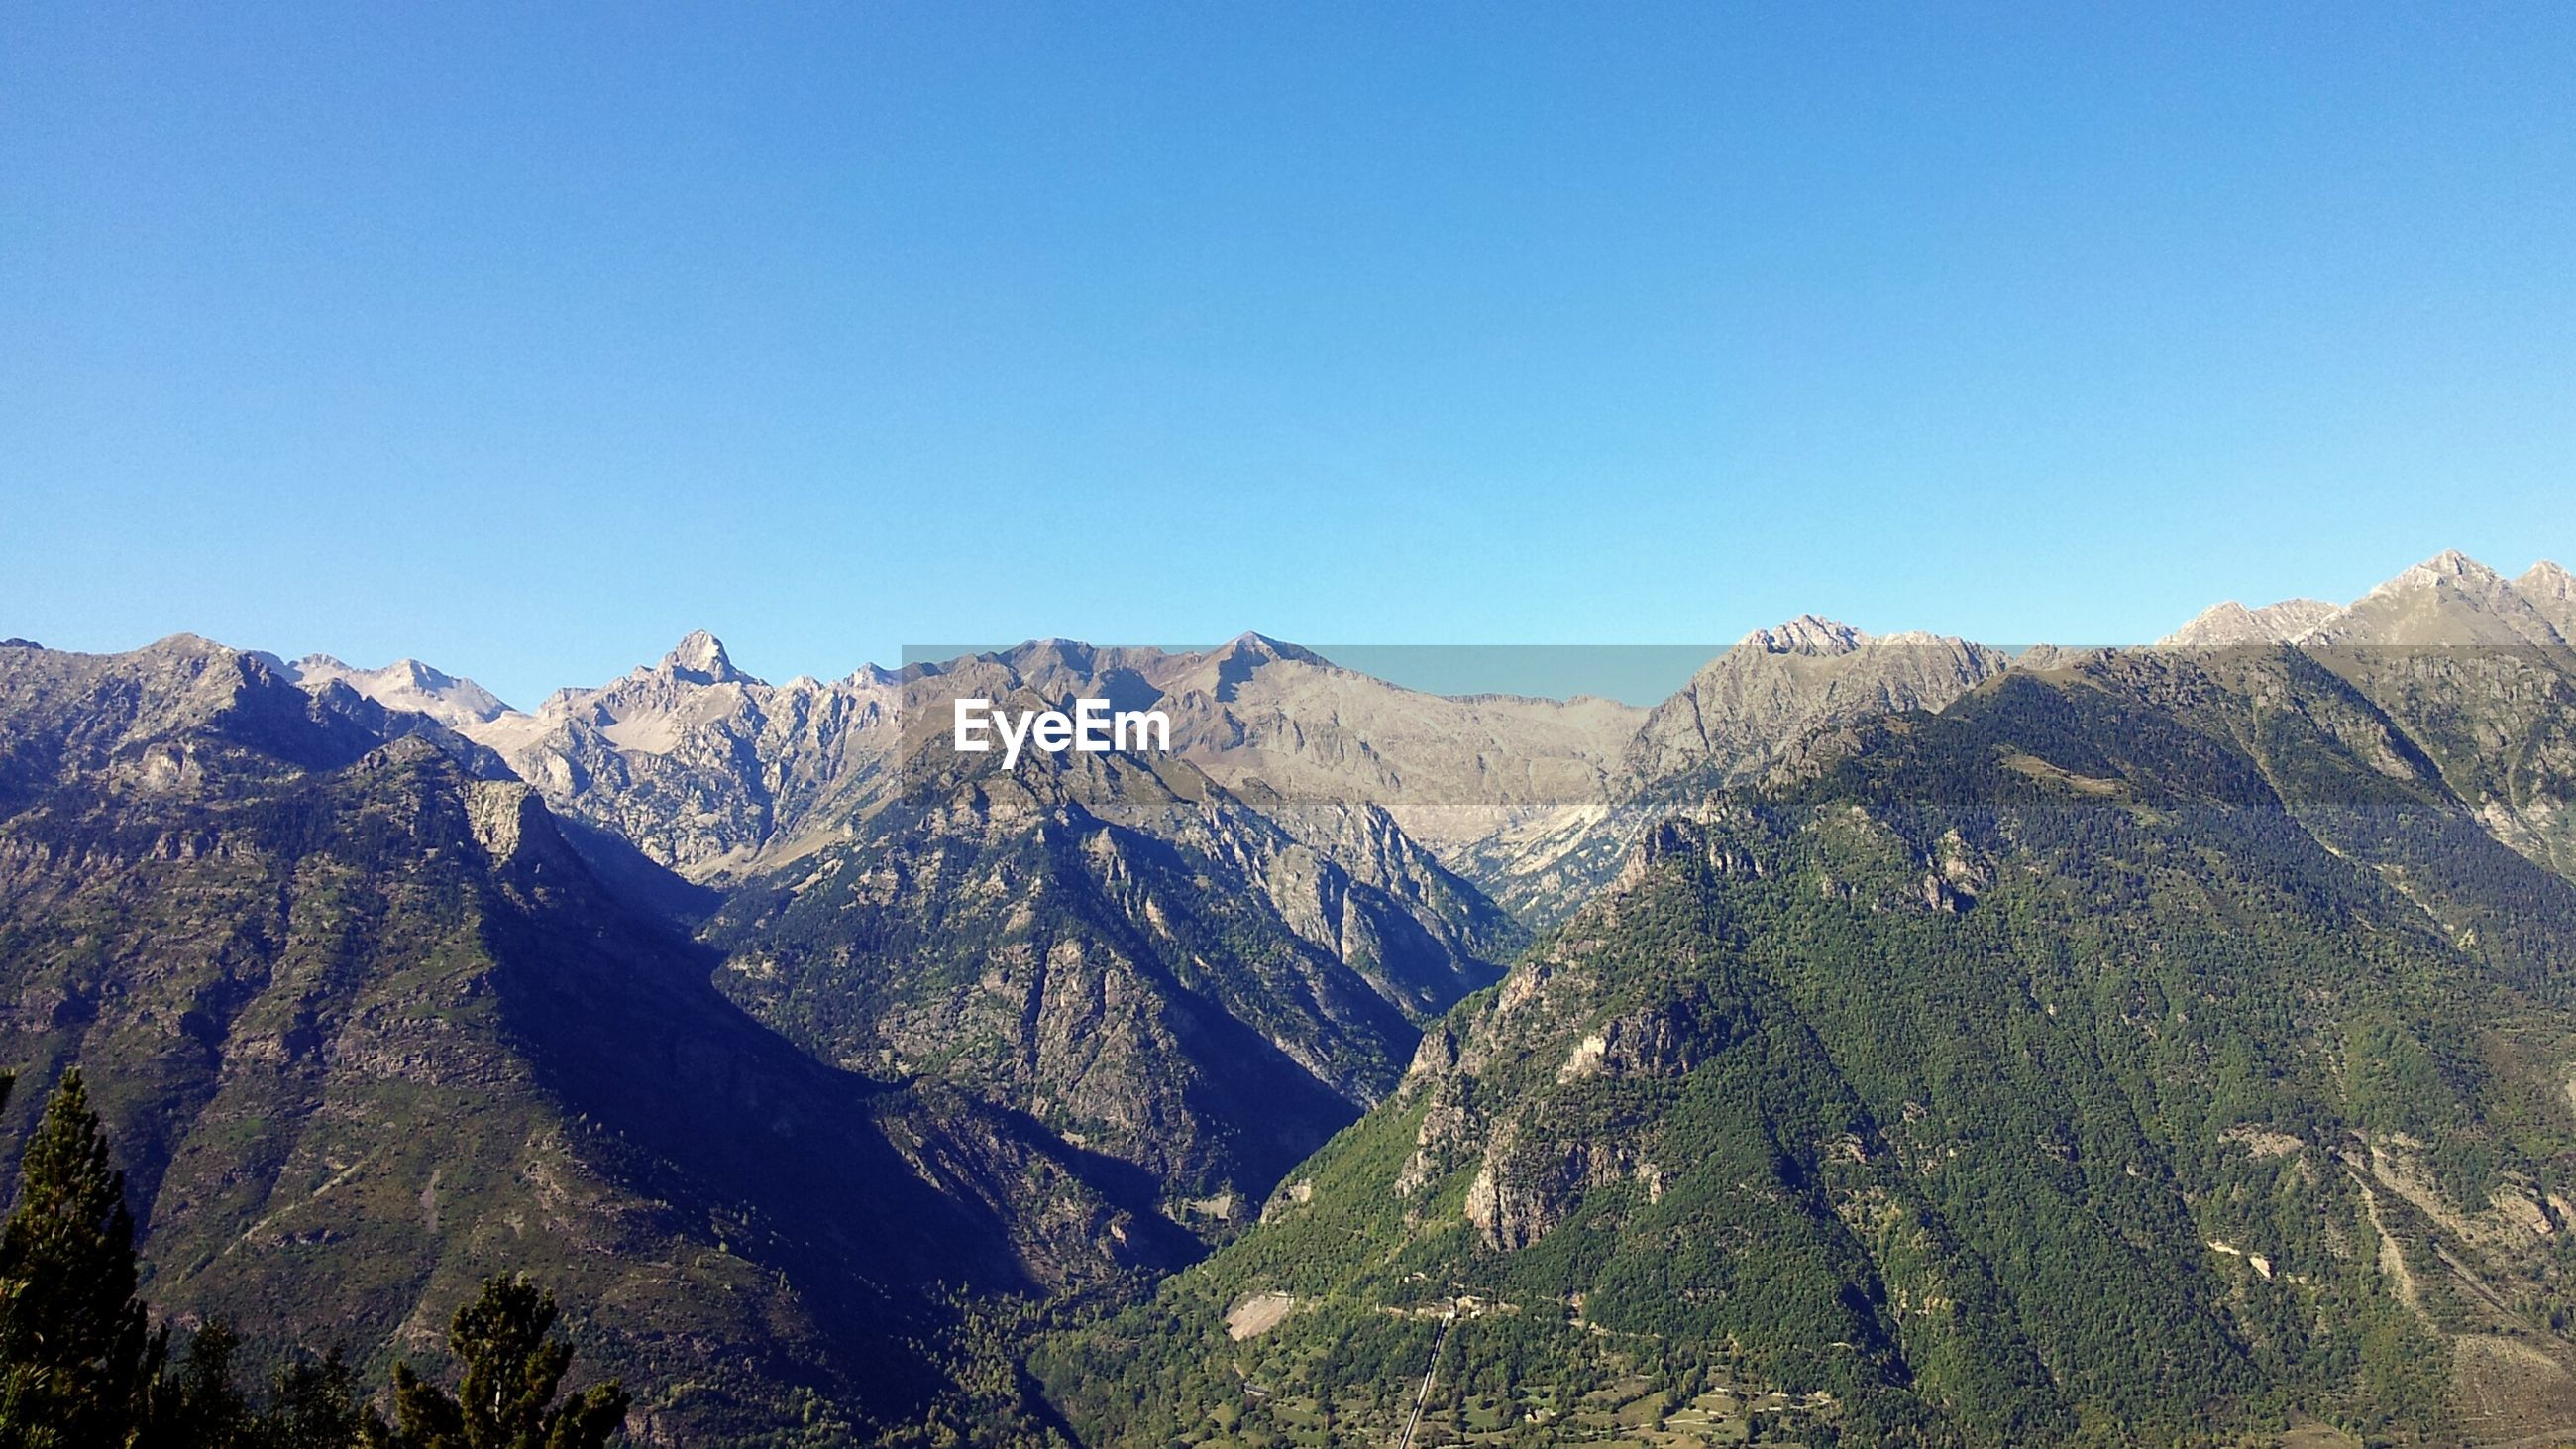 Scenic shot of rocky mountain range against clear blue sky